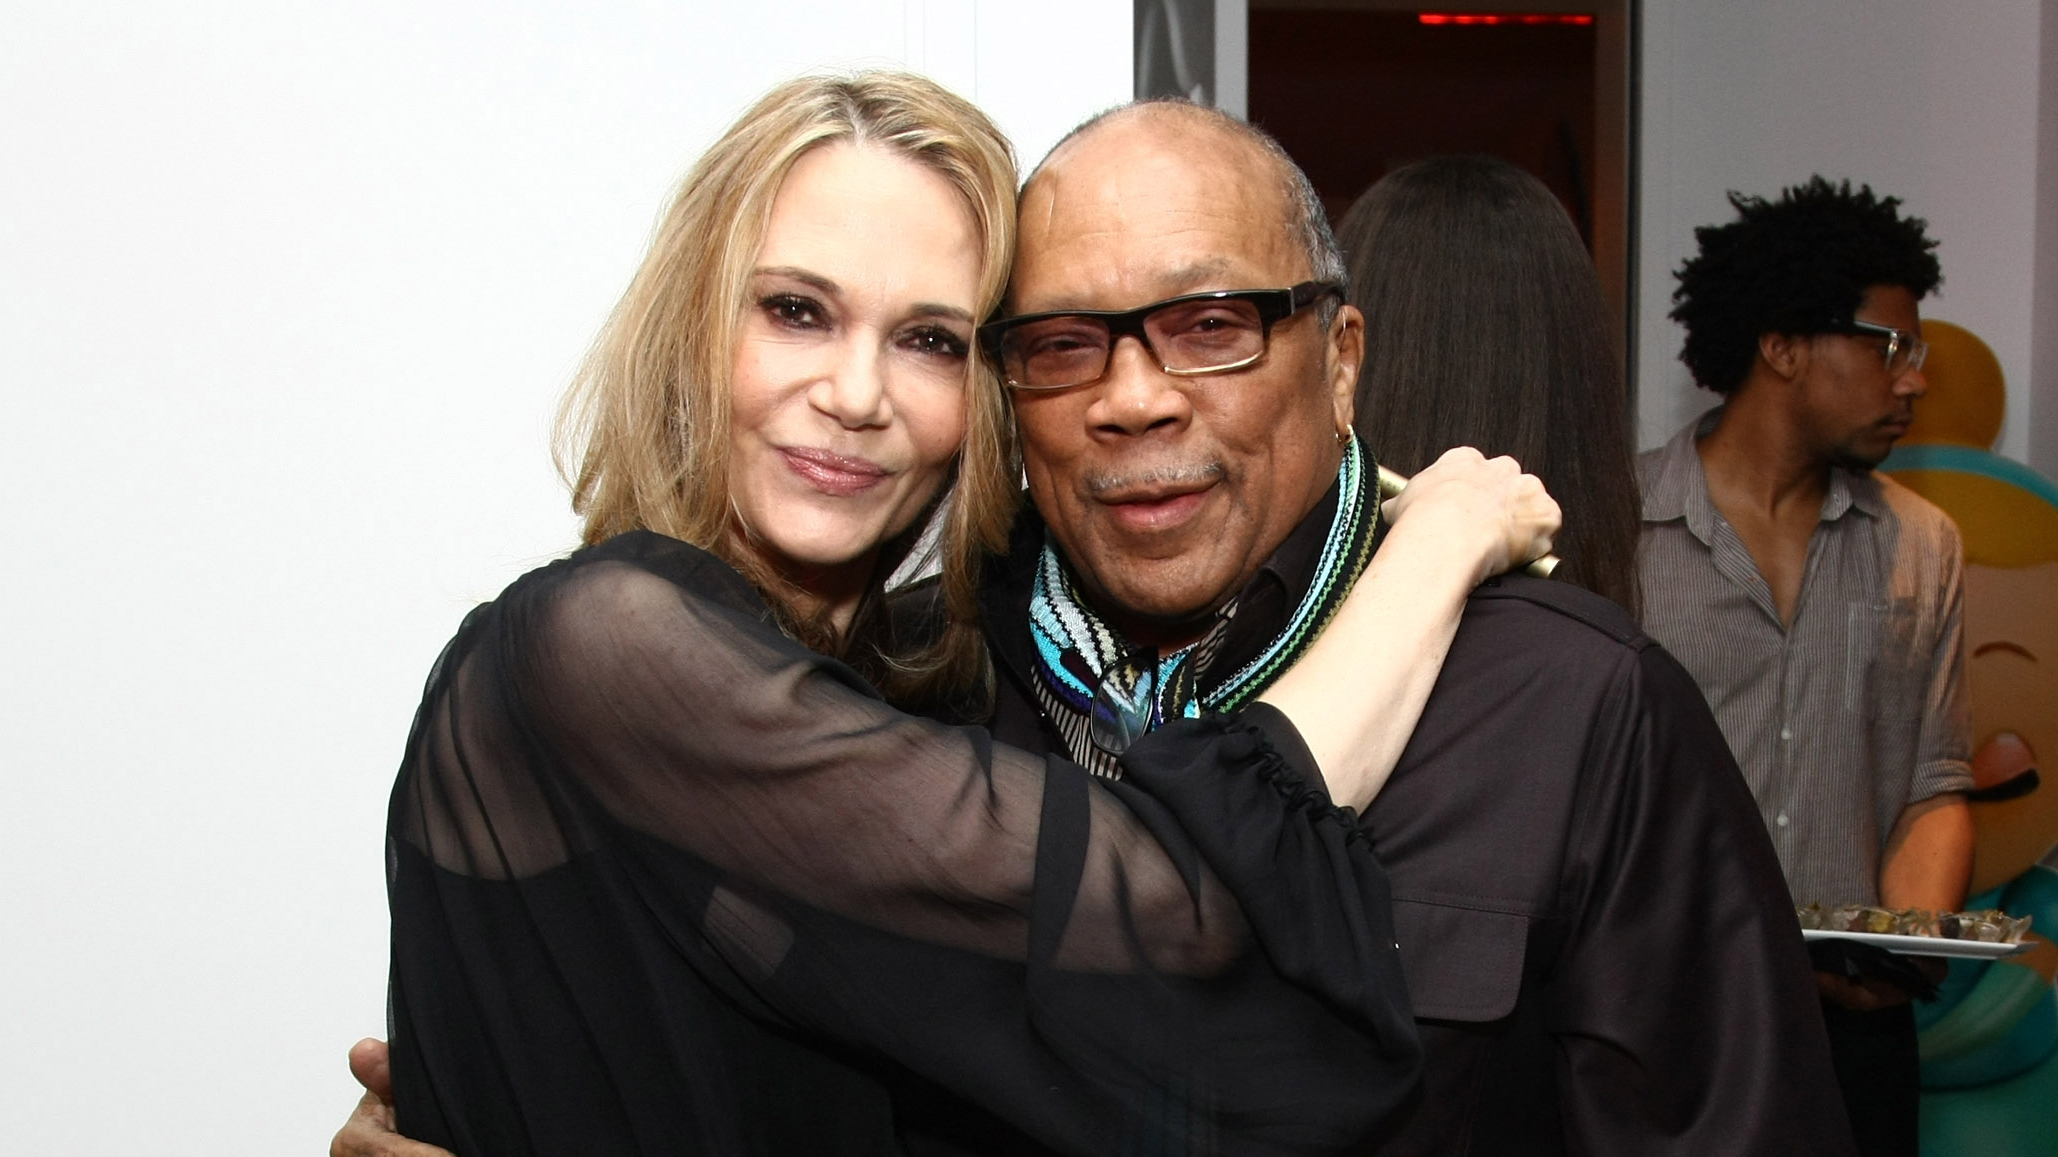 Quincy Jones Shares Emotional Tribute Following Ex-Wife Peggy Lipton's Death: 'Love Is Eternal'